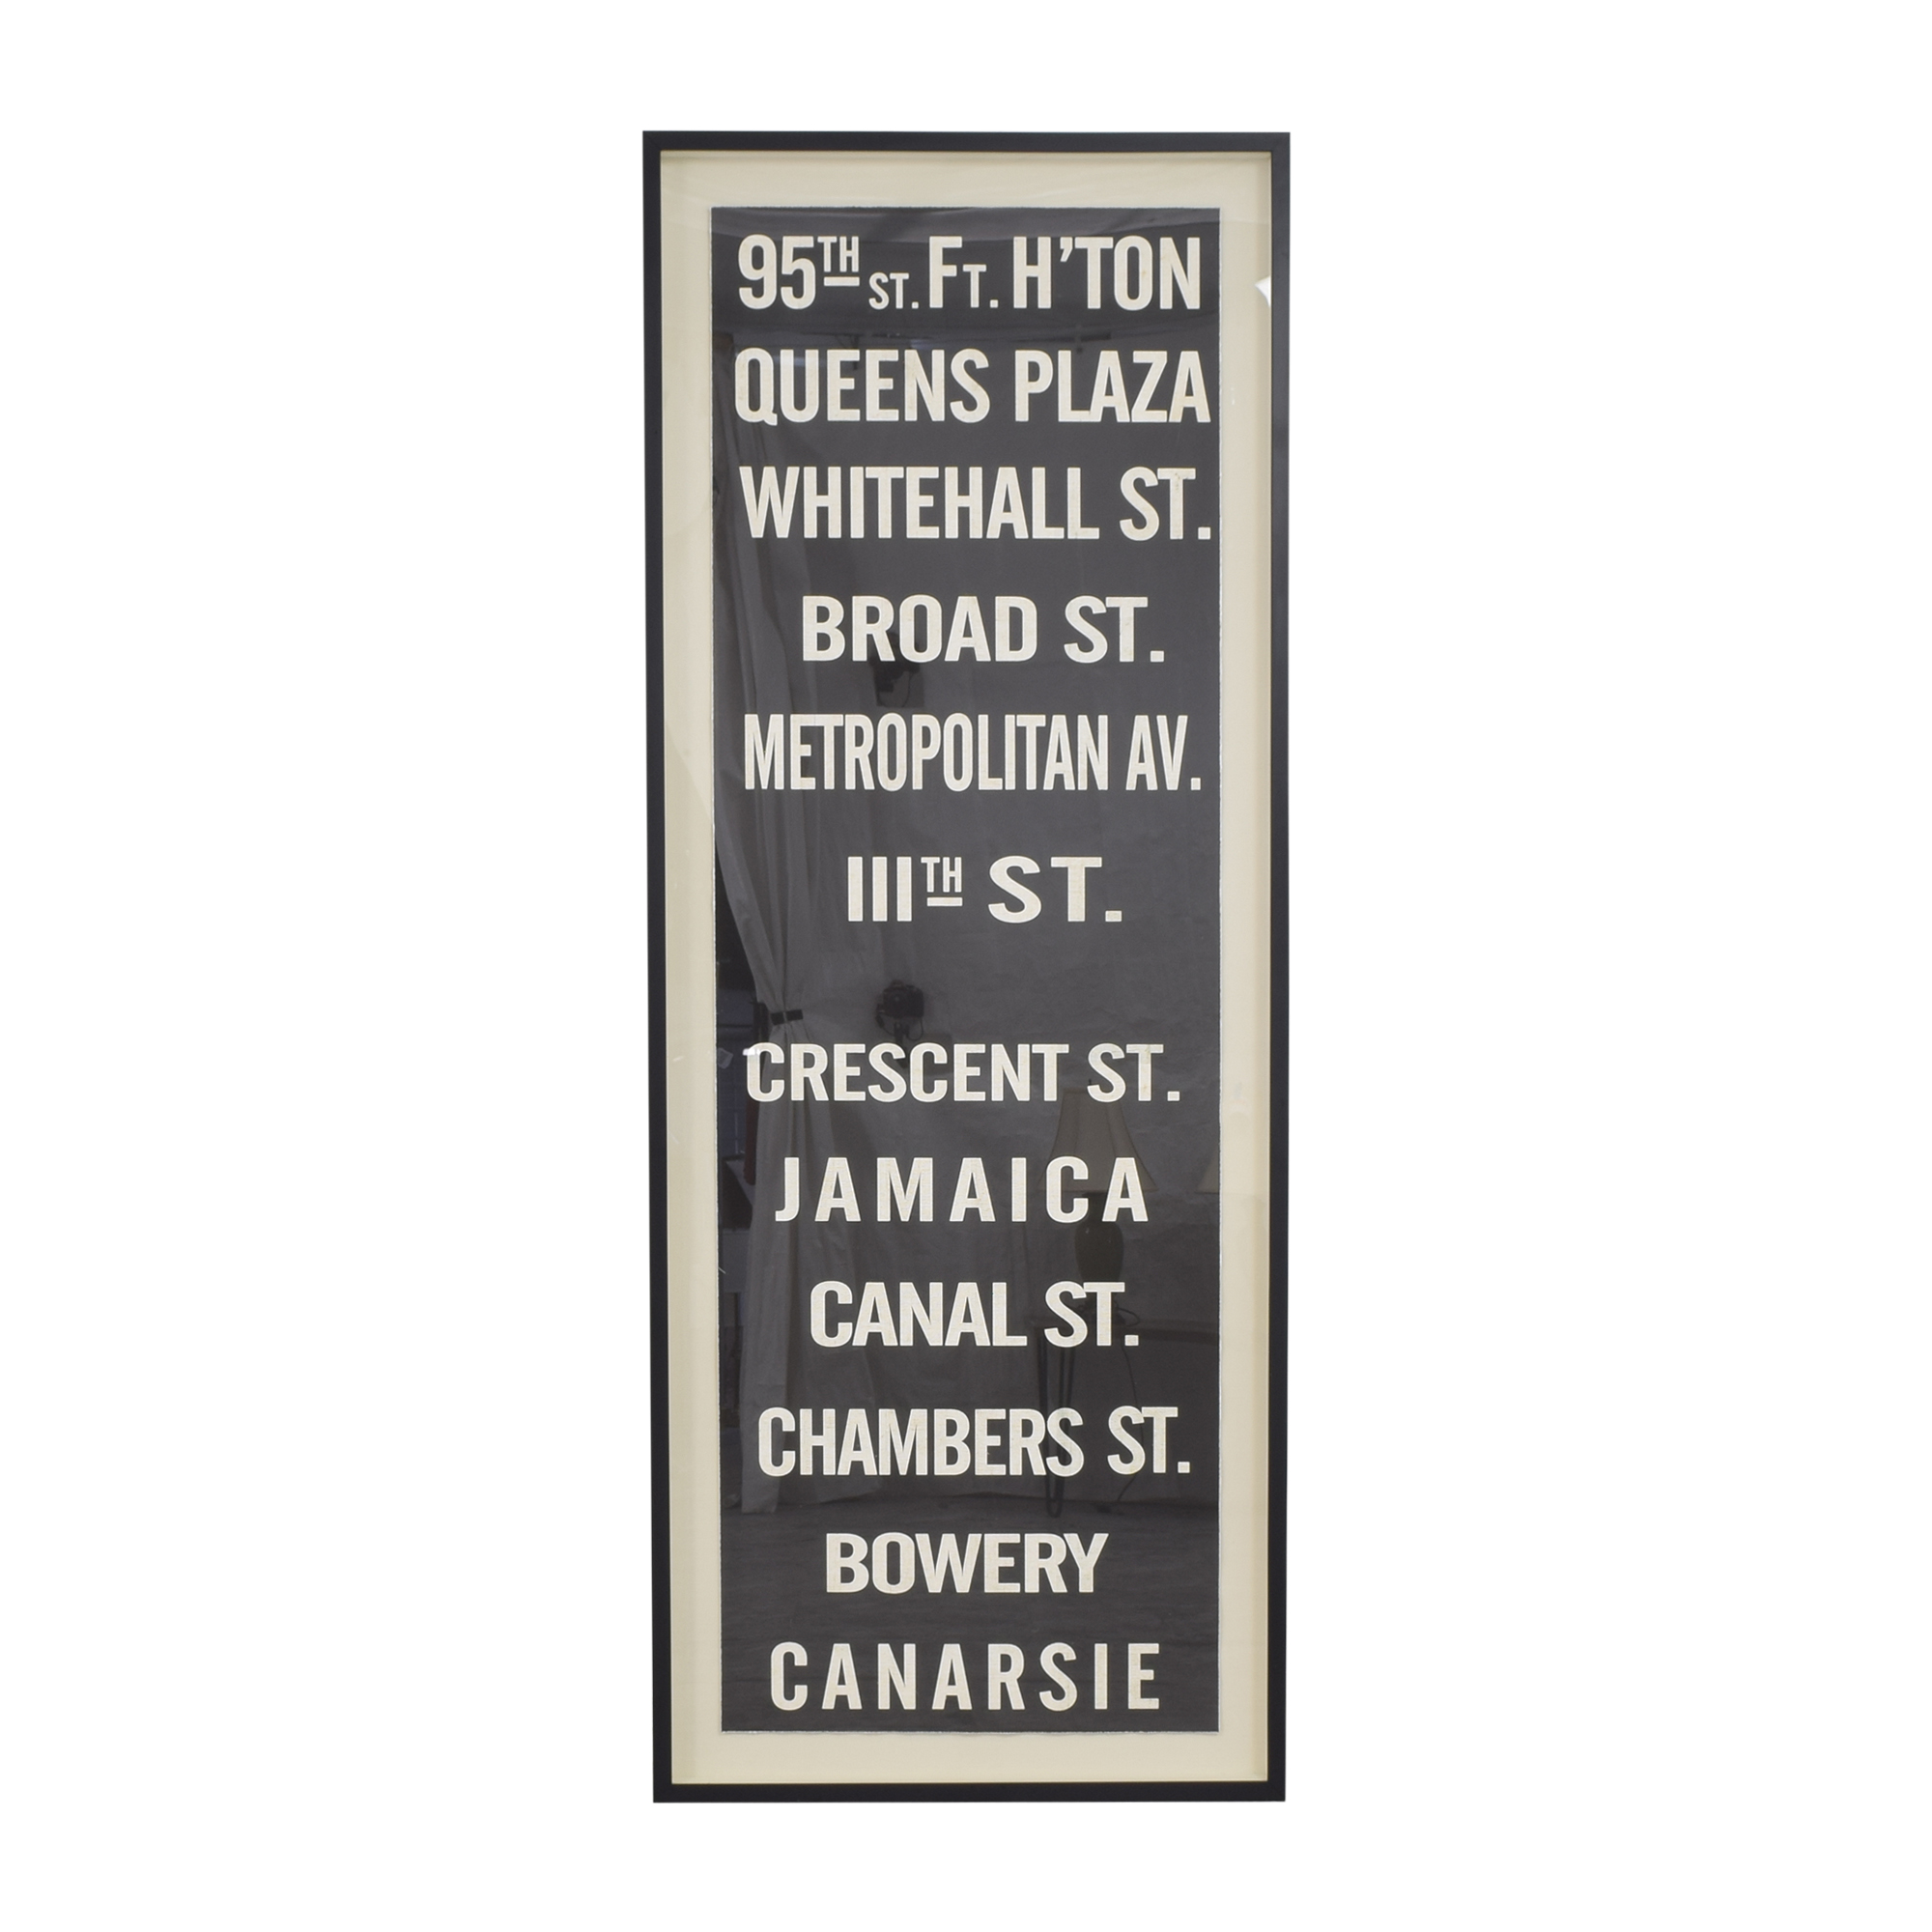 Restoration Hardware Restoration Hardware Subway Sign Art 95th second hand